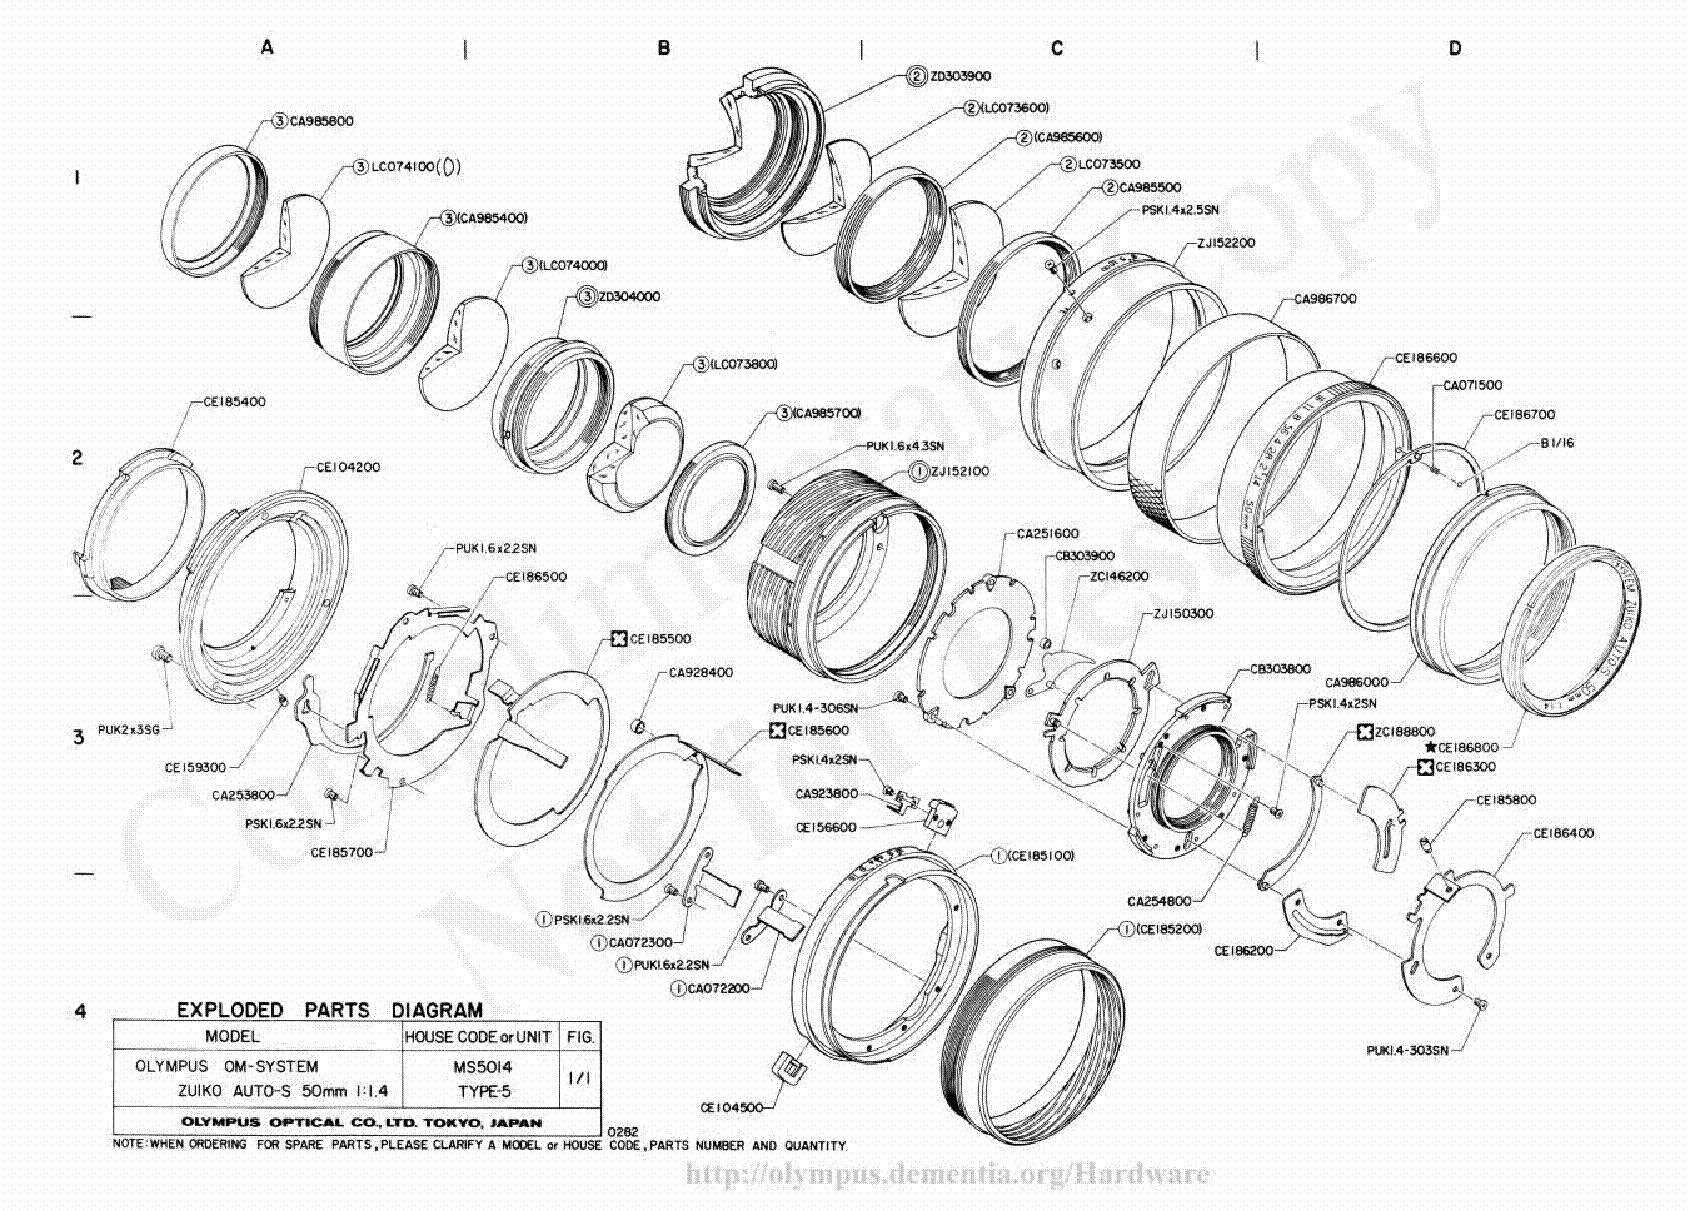 Olympus 150mm F4 Exploded Parts Diagram Service Manual